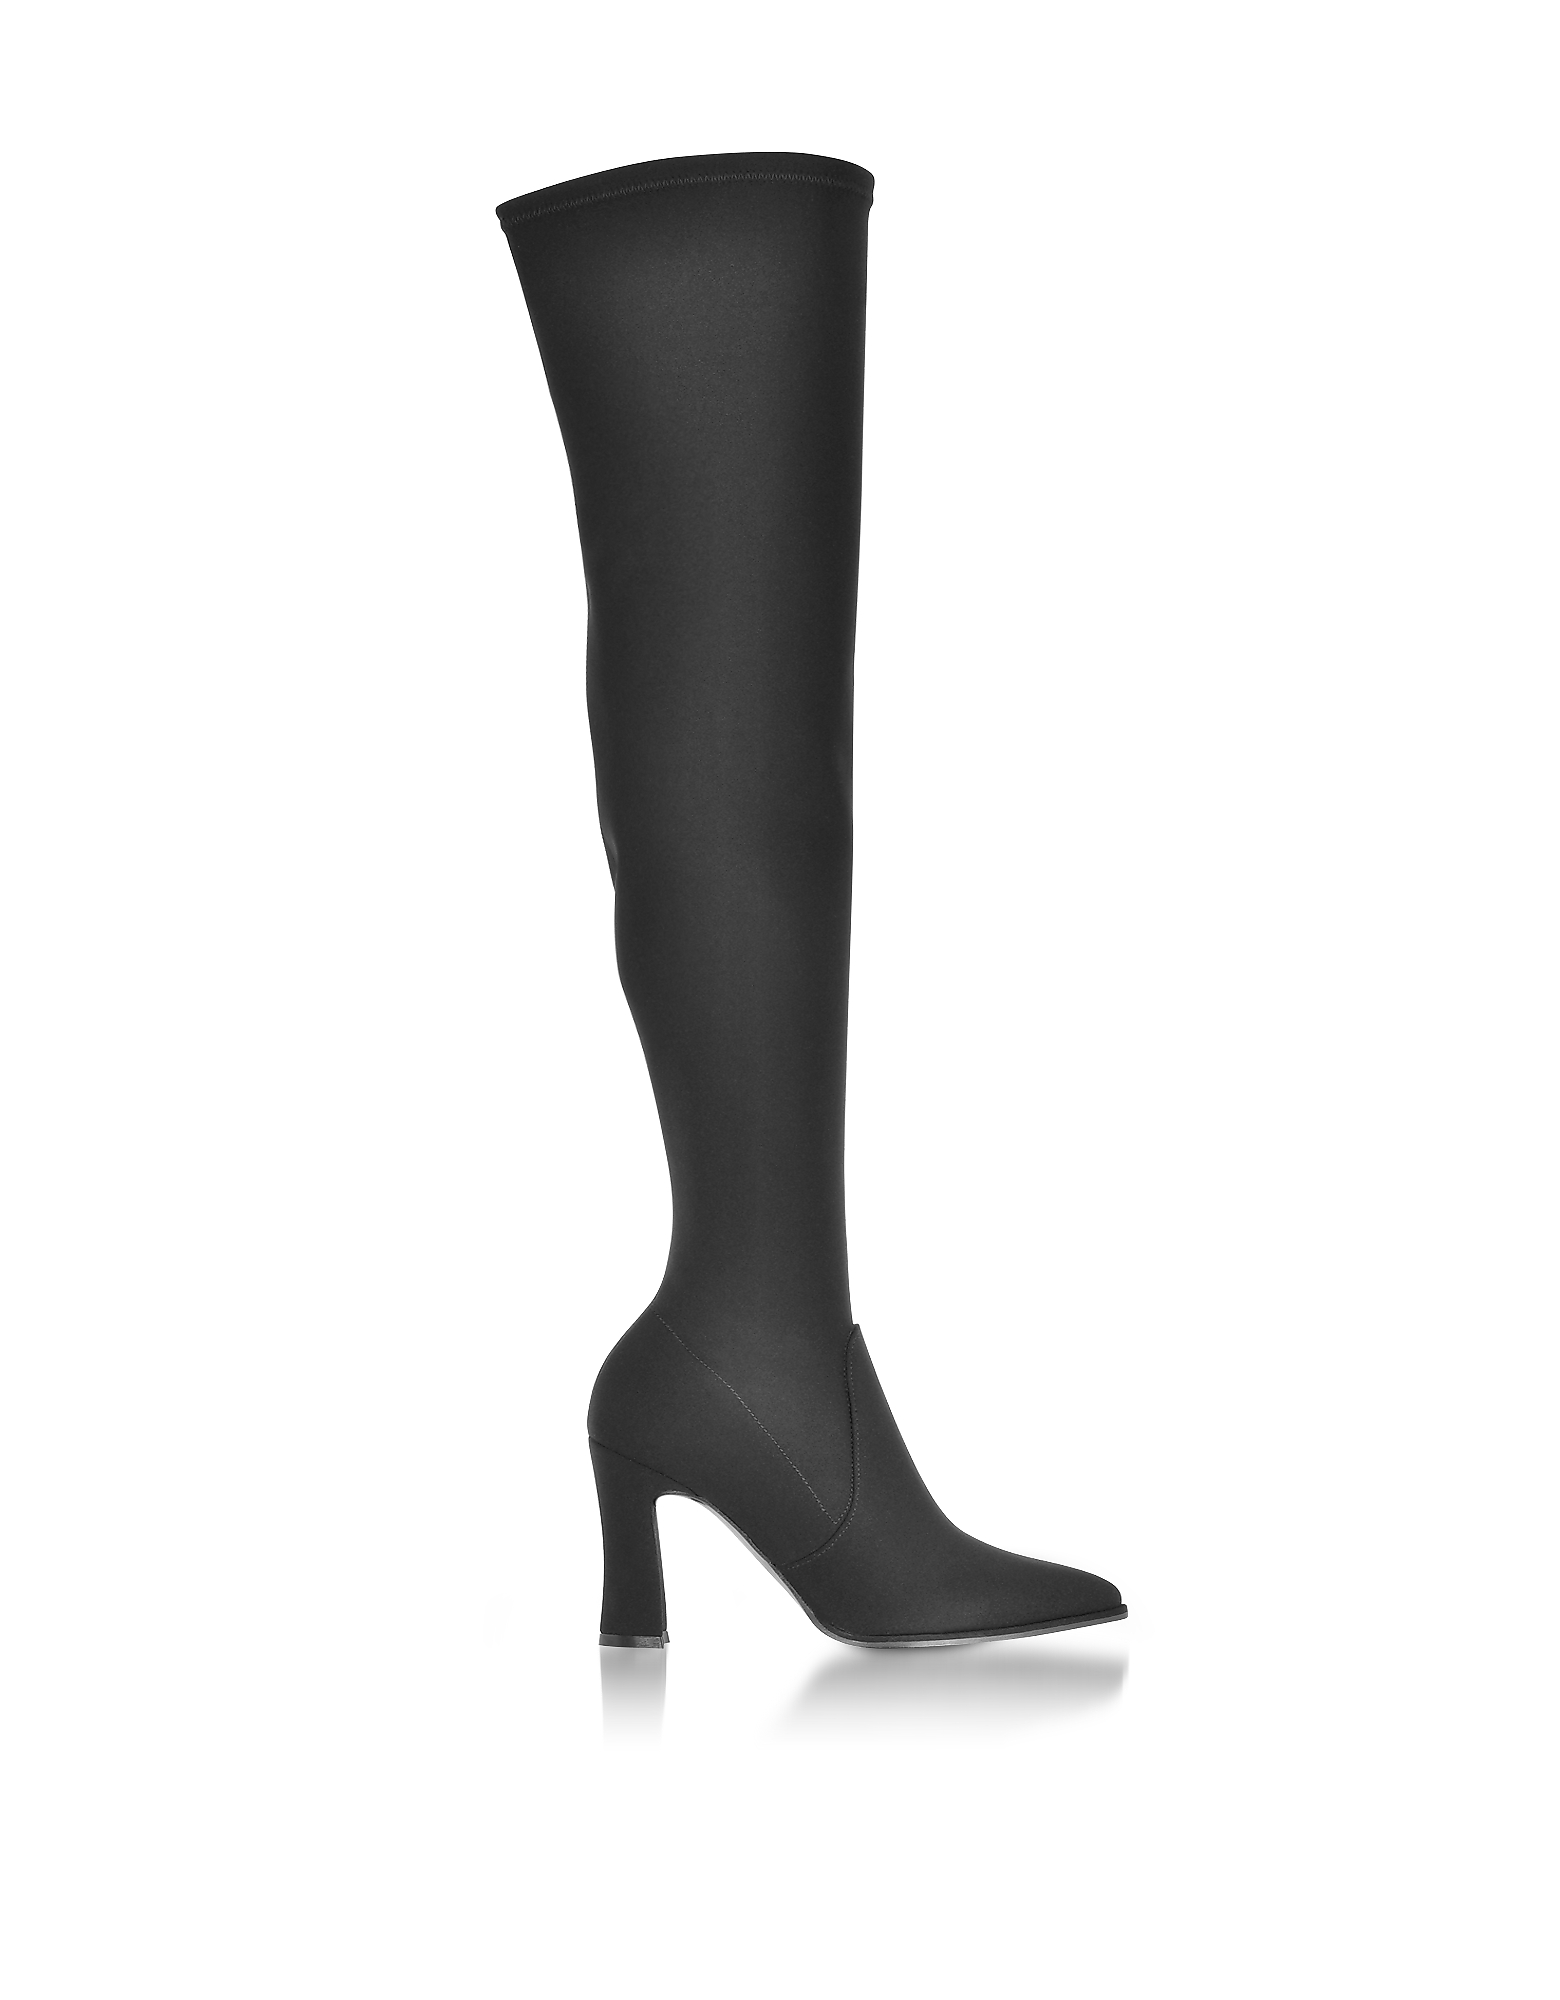 Stuart Weitzman Shoes, Hirise Black Micro Stretch Fabric High Heel Over The Knee Boots